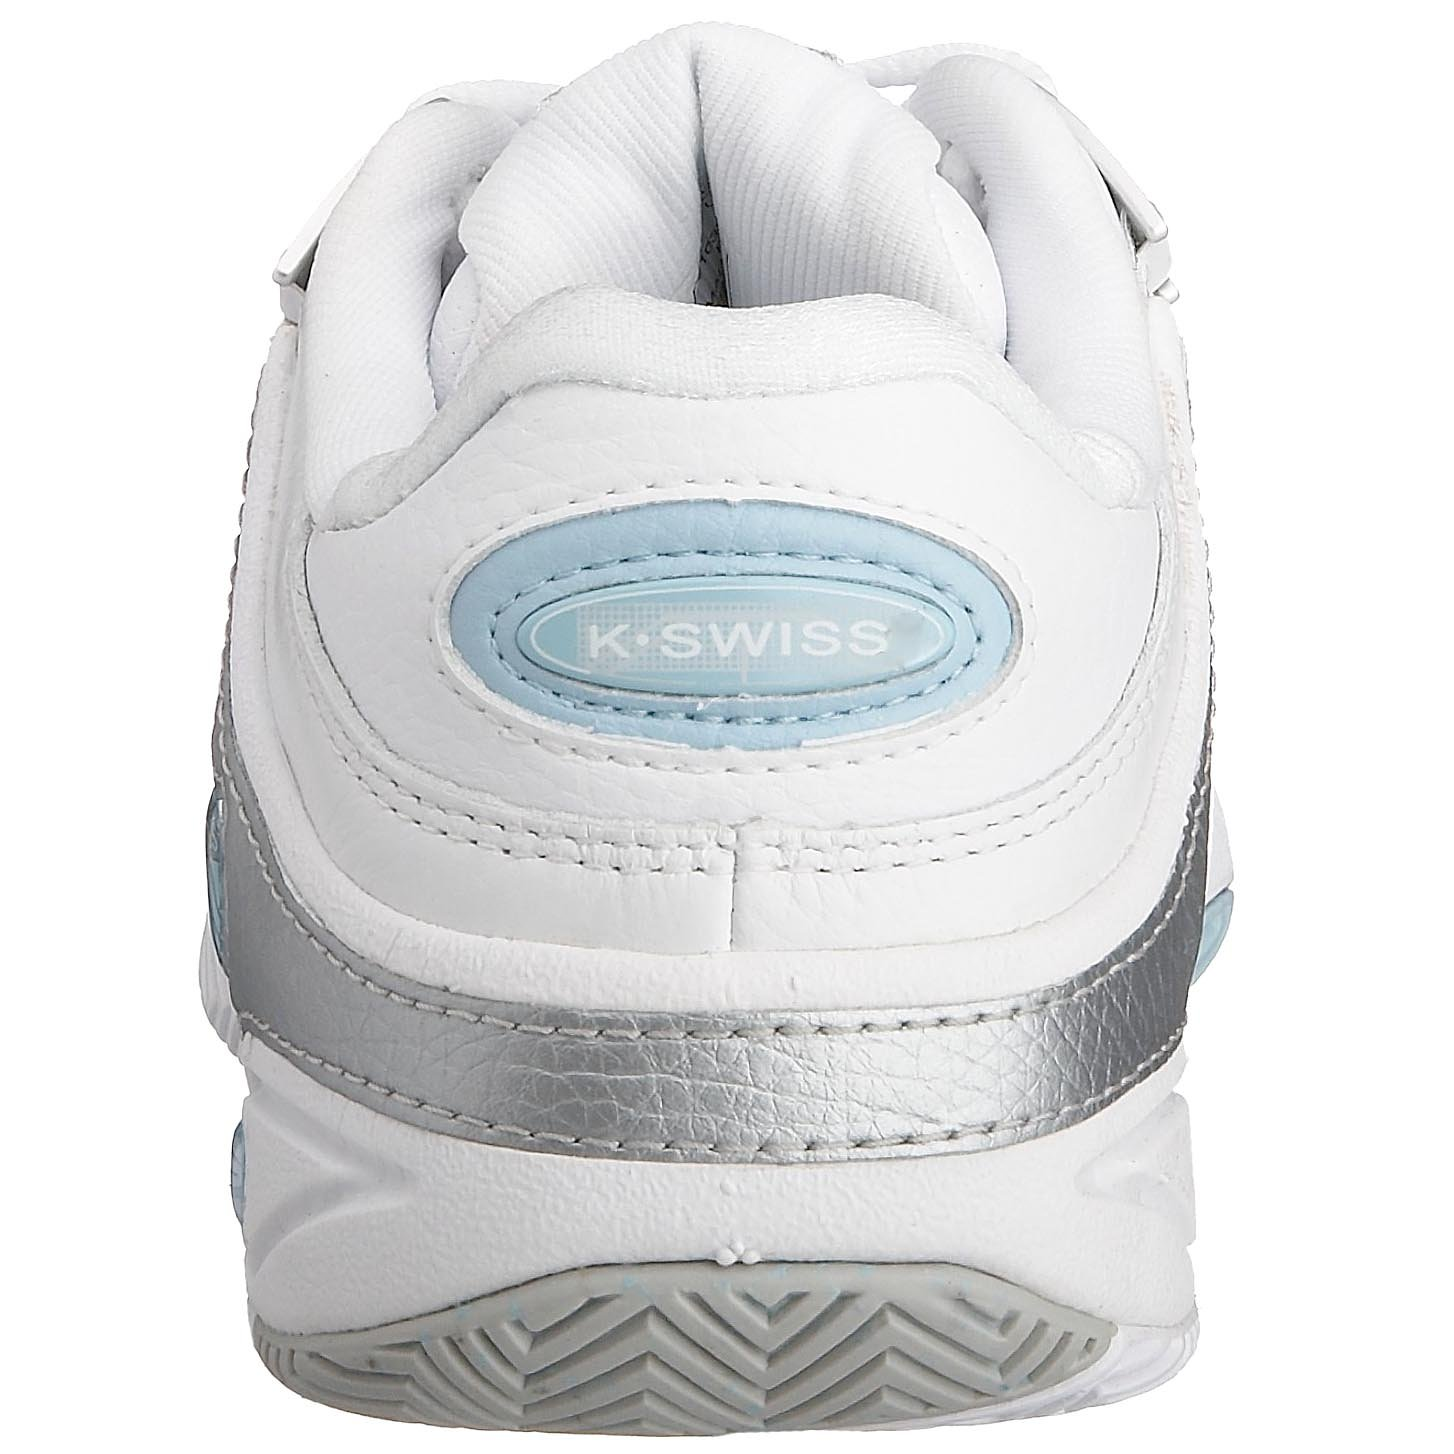 K-Swiss Defier RS Womens Tennis Shoes, White, US6.5